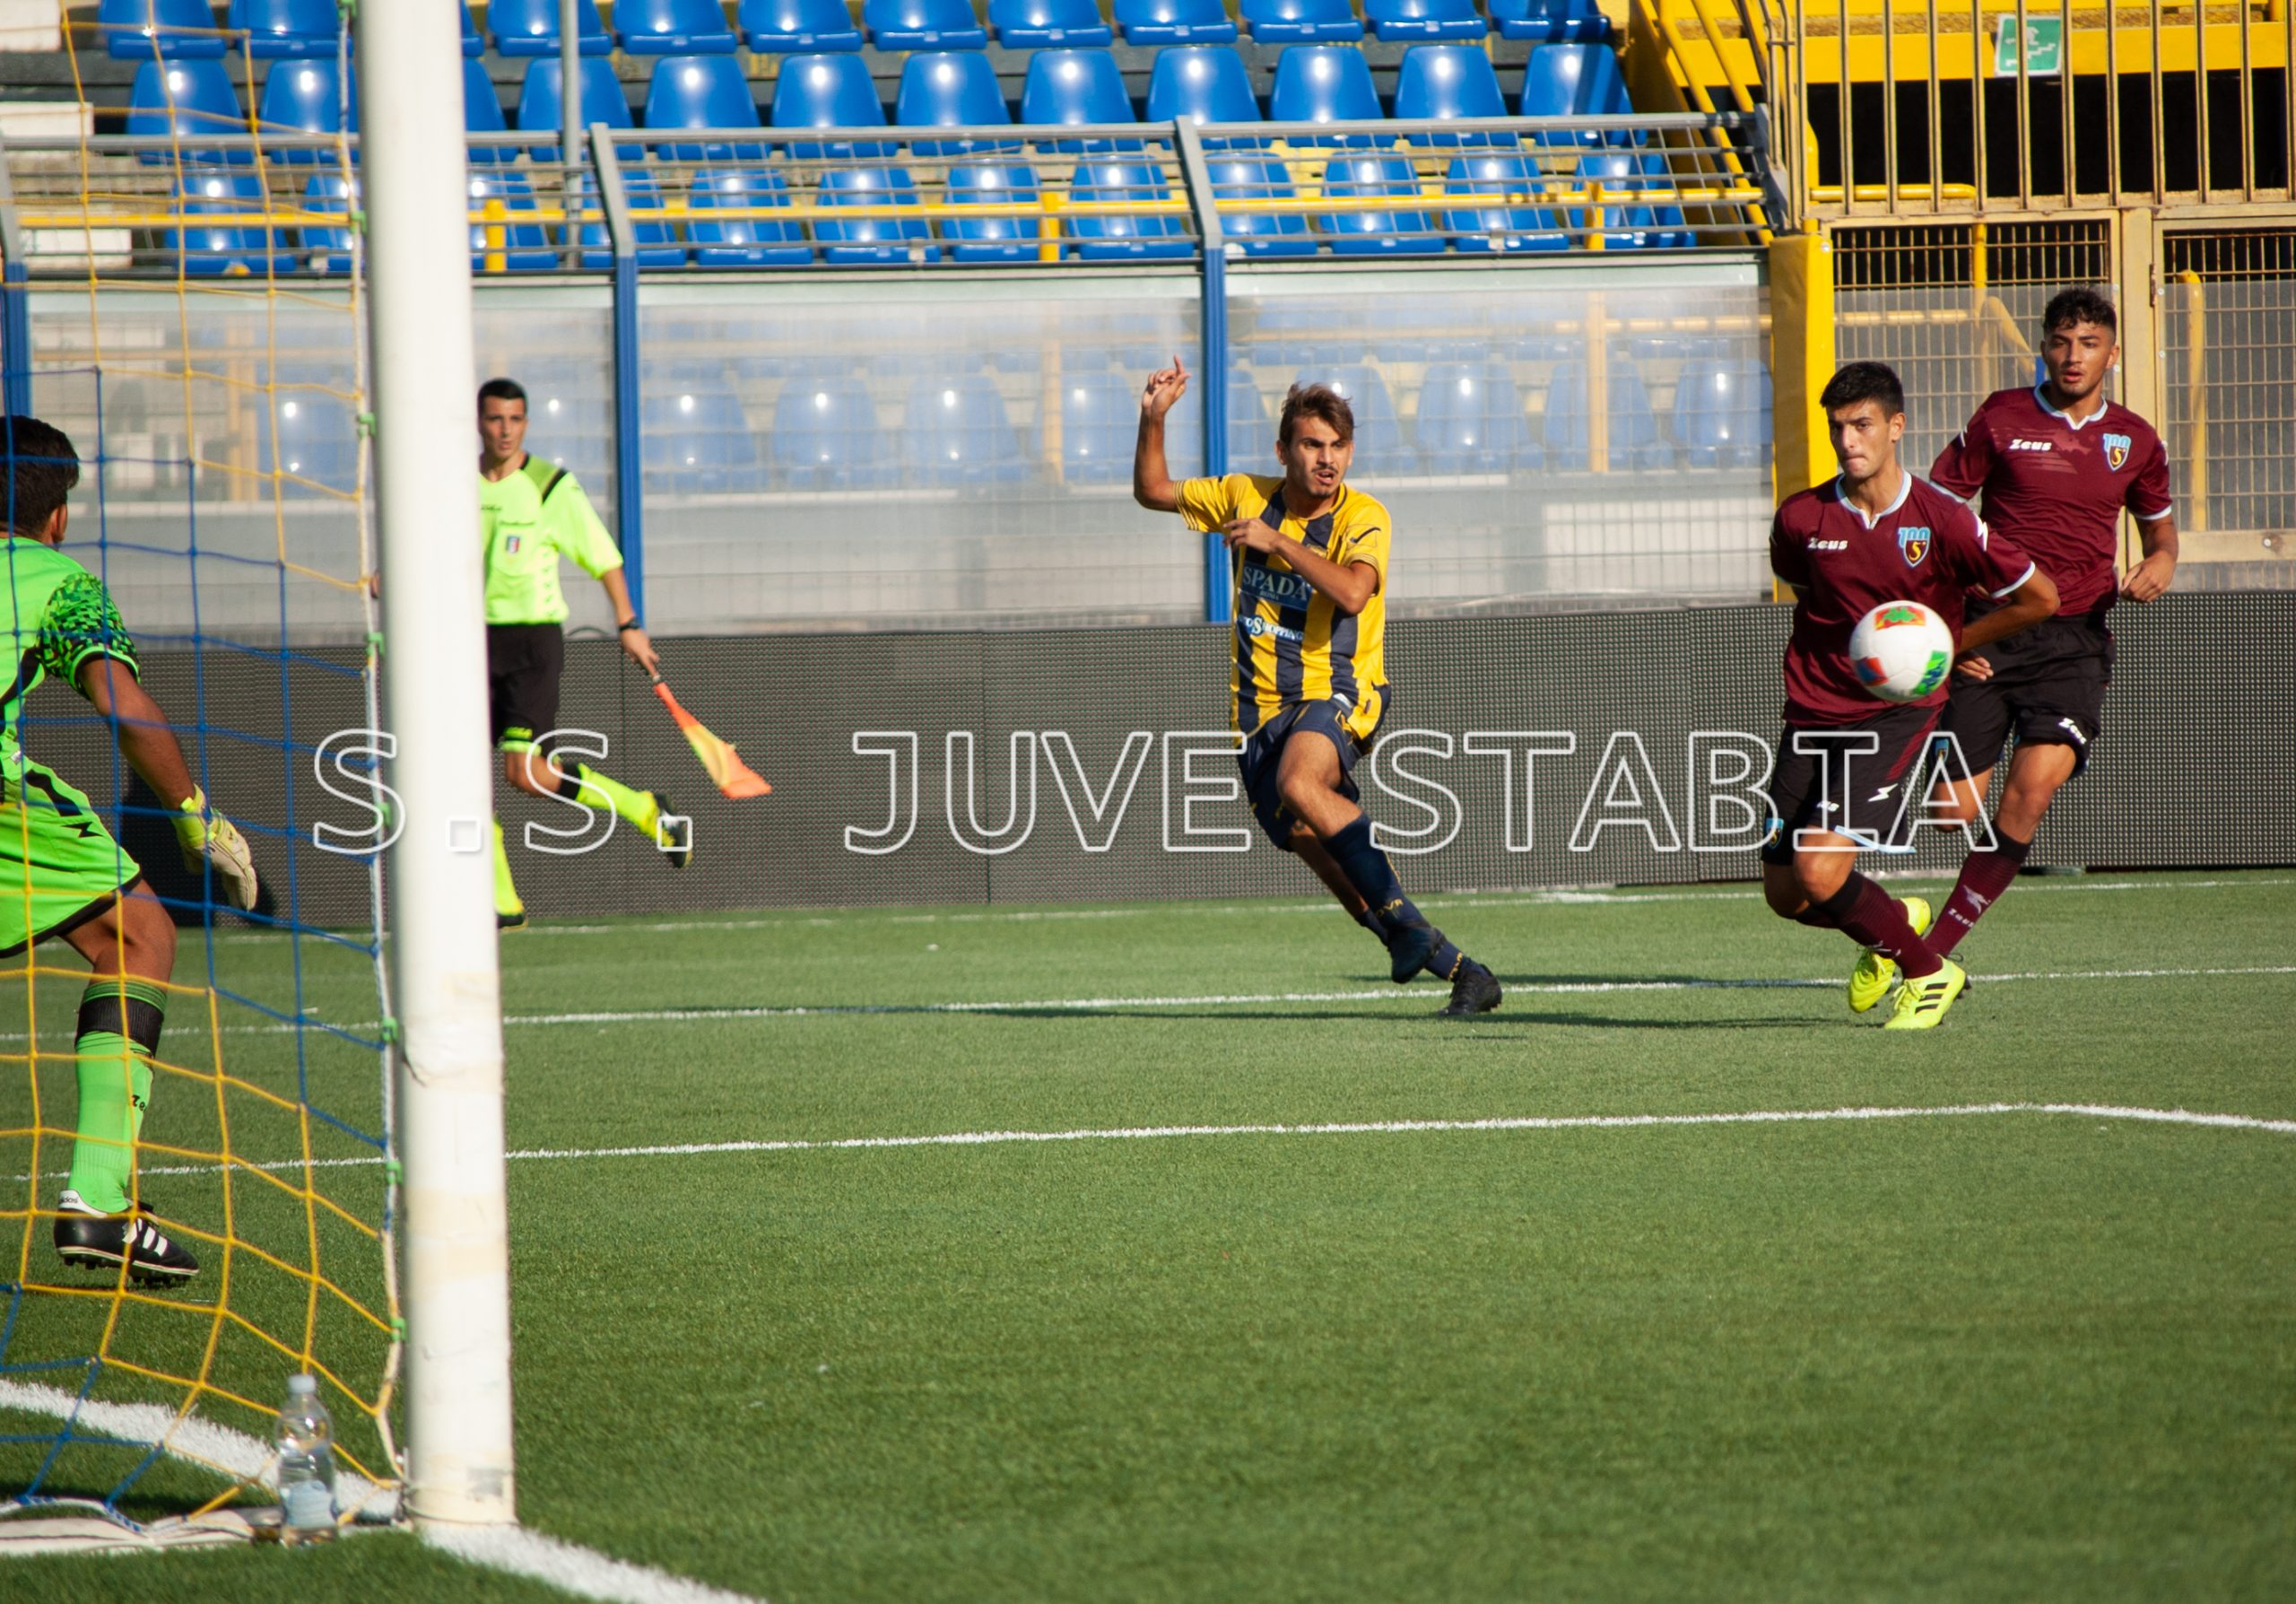 SS JUVE STABIA Under 17, Juve Stabia-Salernitana 0-1: gli highlights del  match (VIDEO) - SS JUVE STABIA